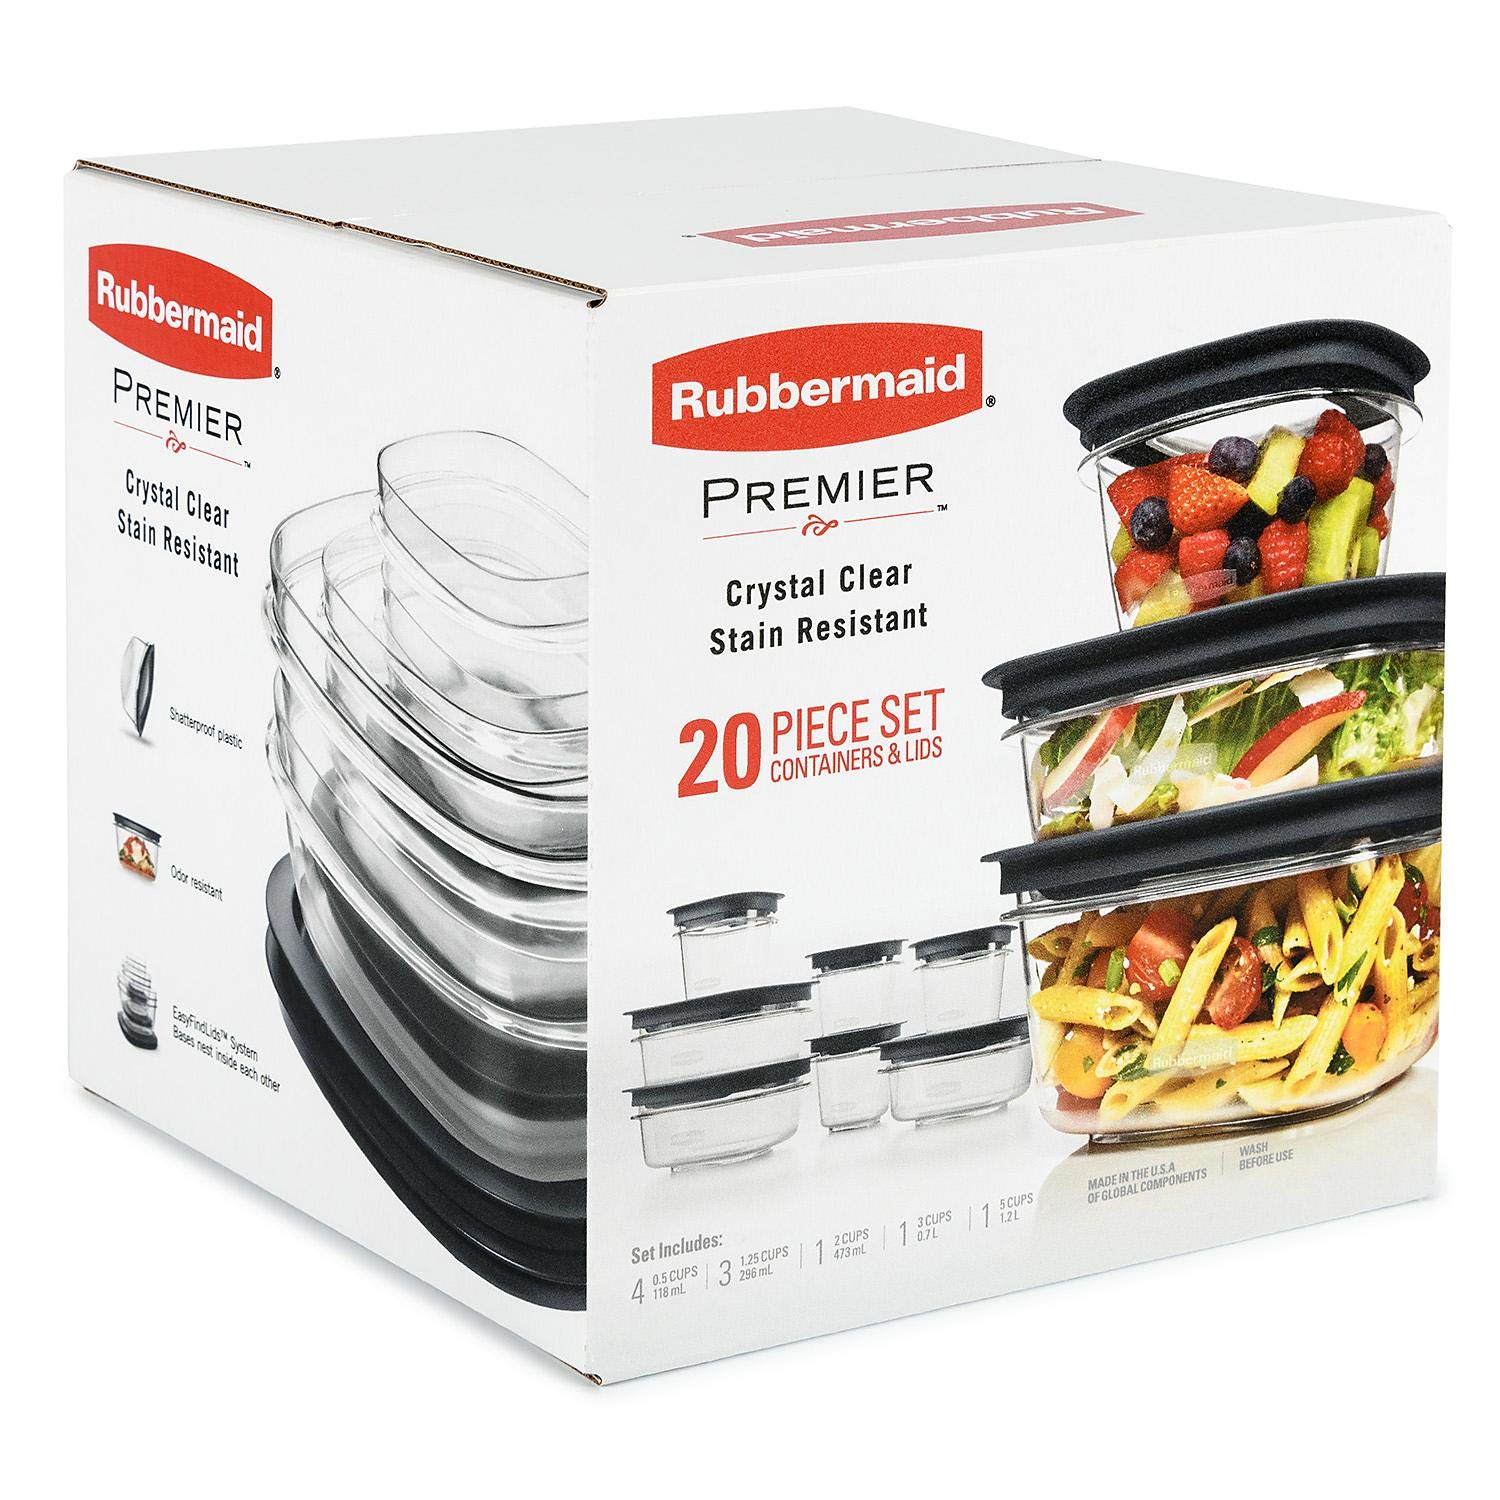 Rubbermaid Premier Crystal Clear Stain Resistant 20 Piece Set Grey Lids